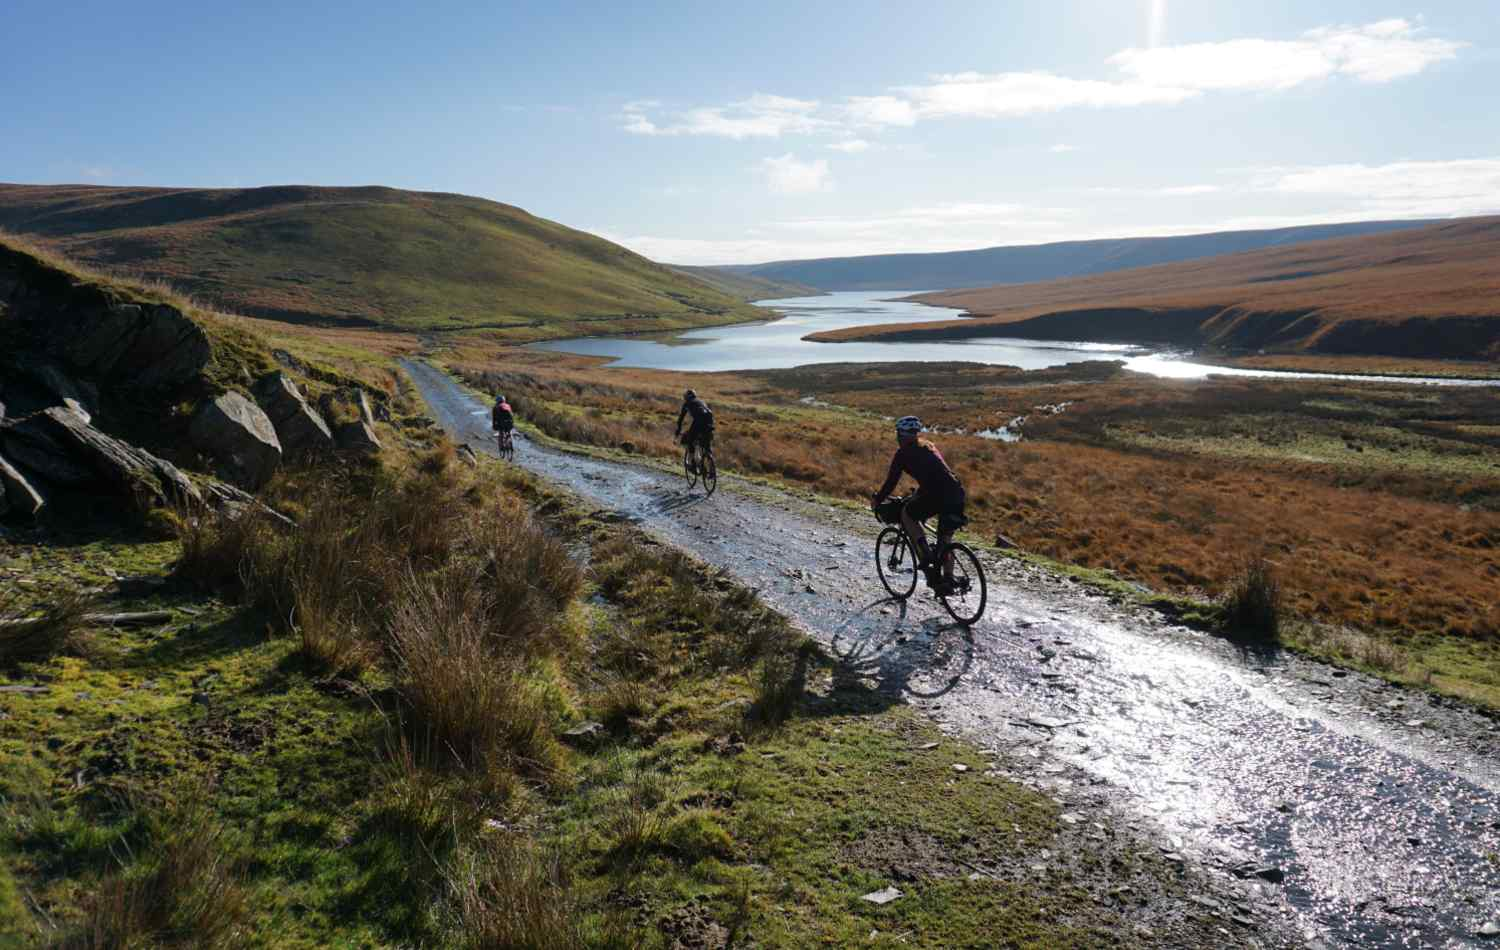 three people cycling on a Gravel Road in Wales